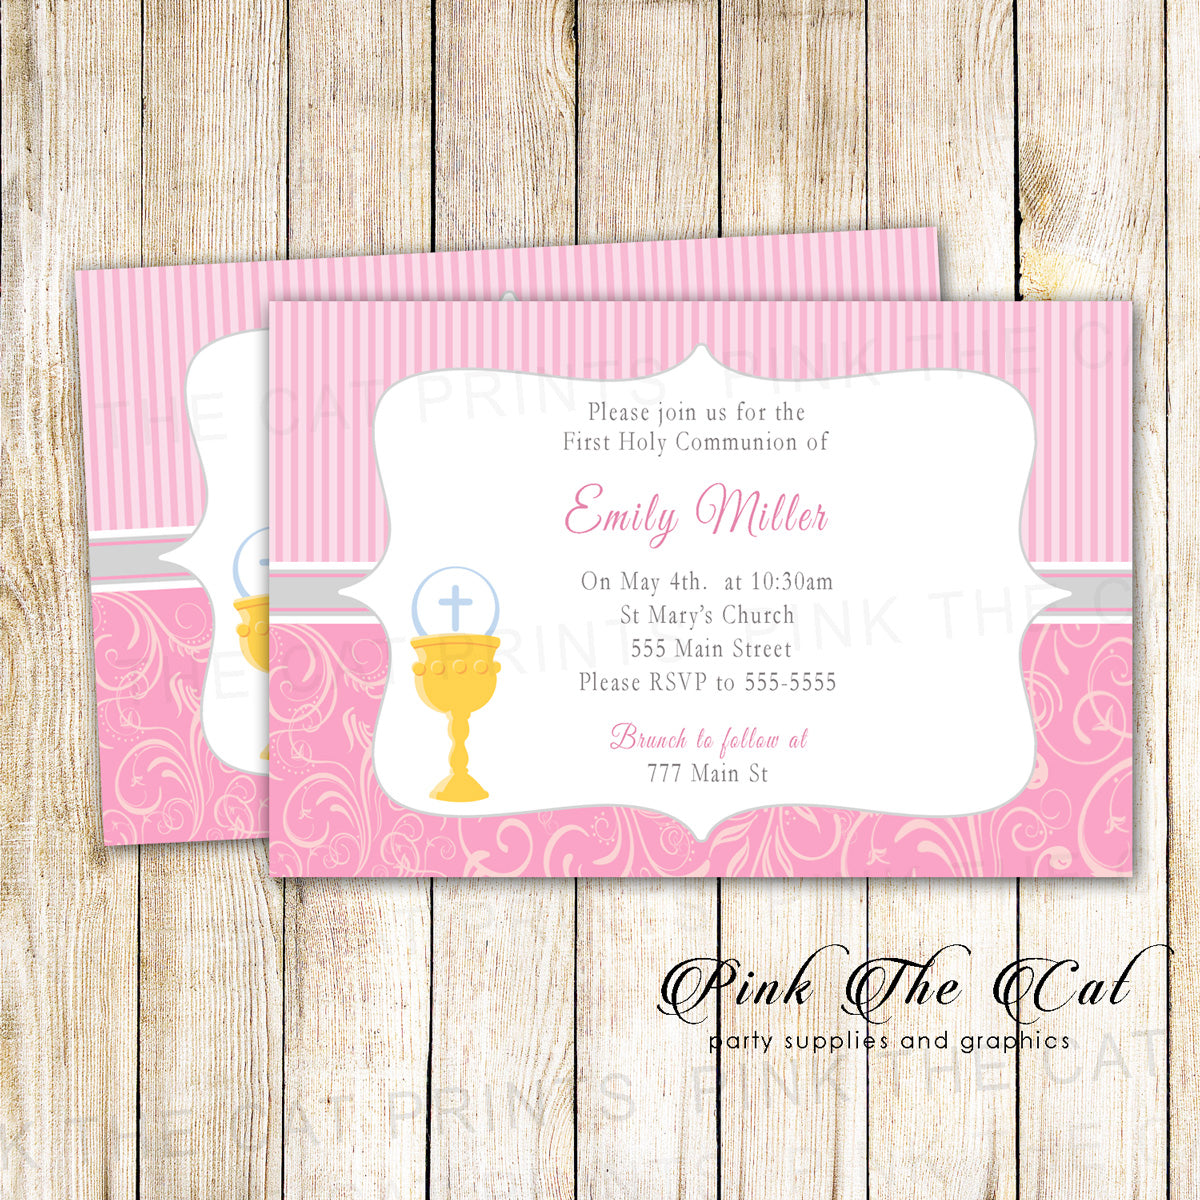 This is an image of Printable First Communion Cards for celebration